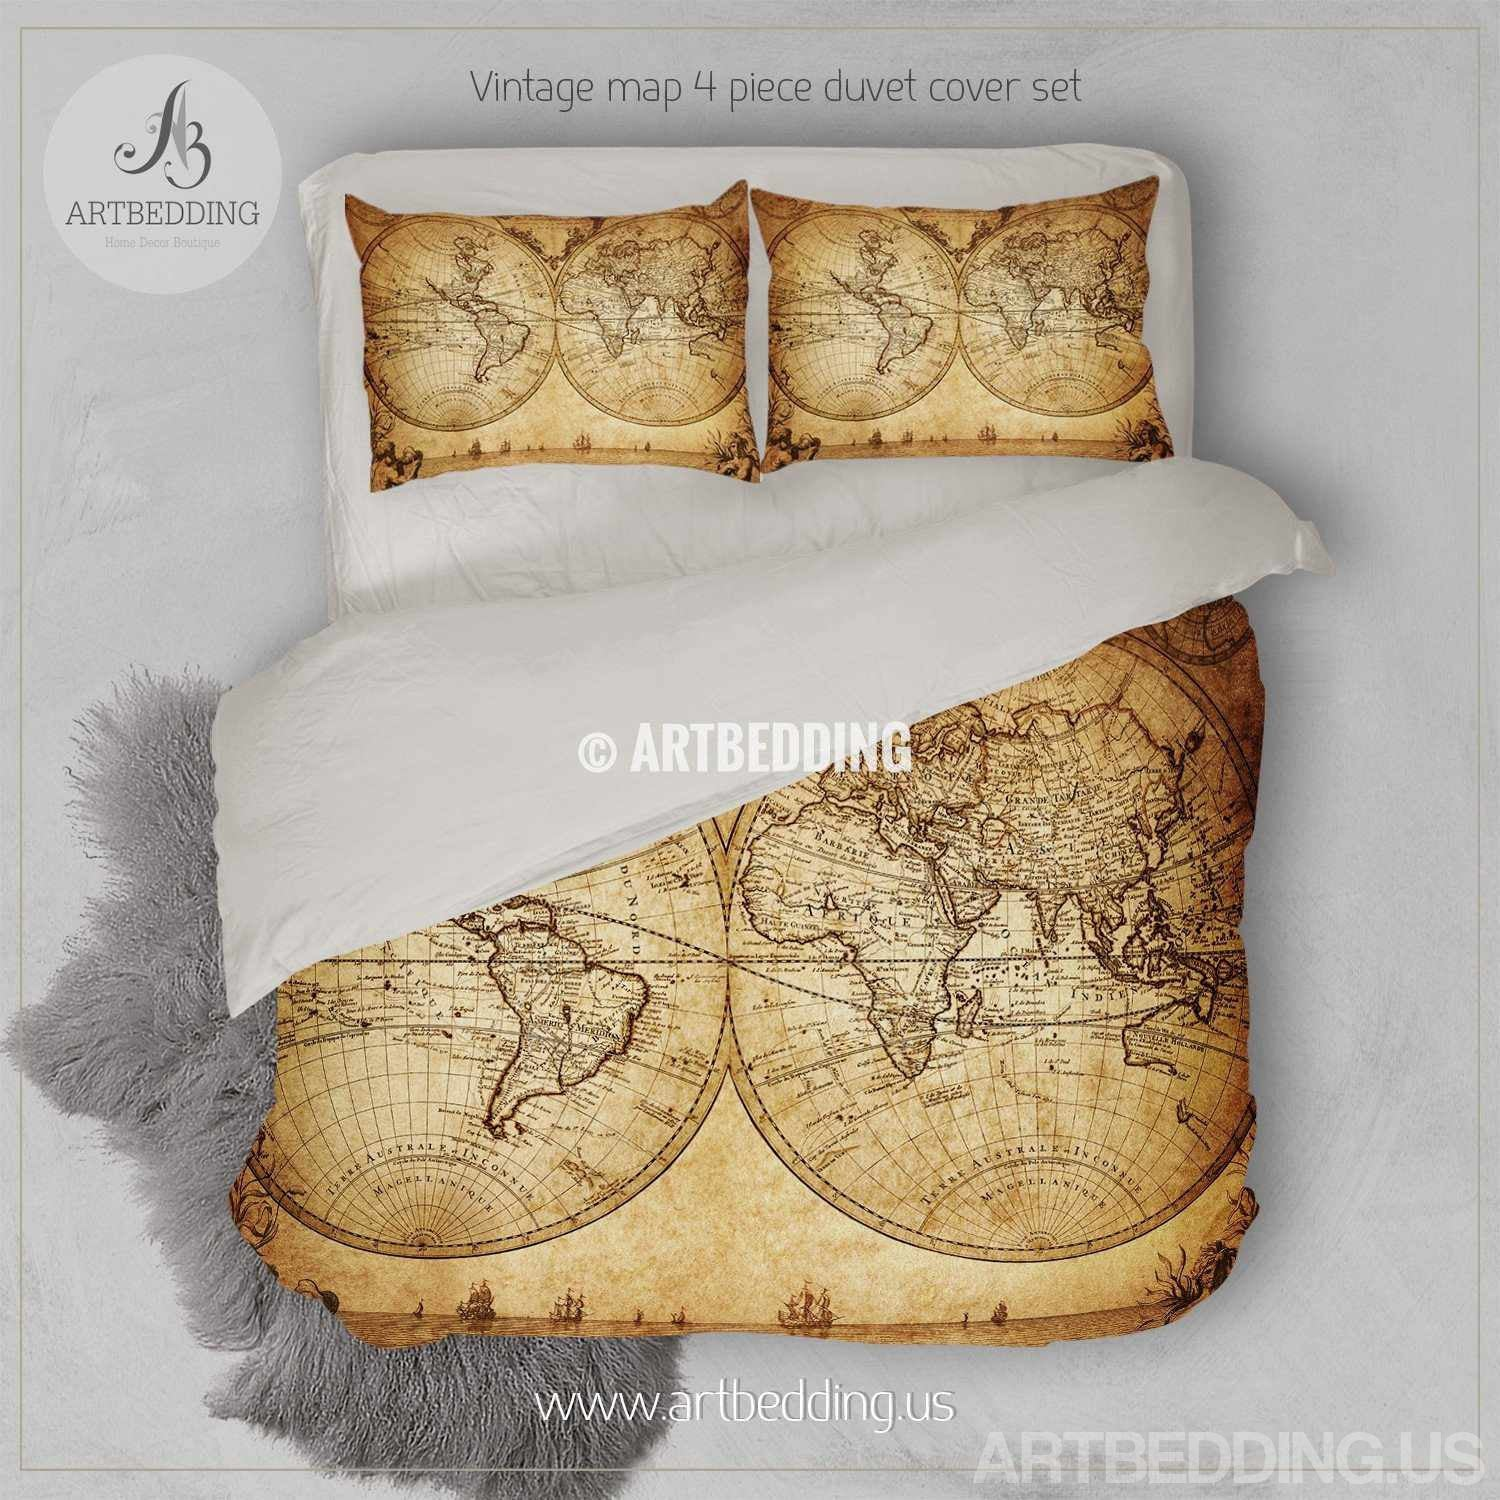 Vintage world map bedding, 1733 Historical old map of the world duvet cover  set, Antique map comforter set